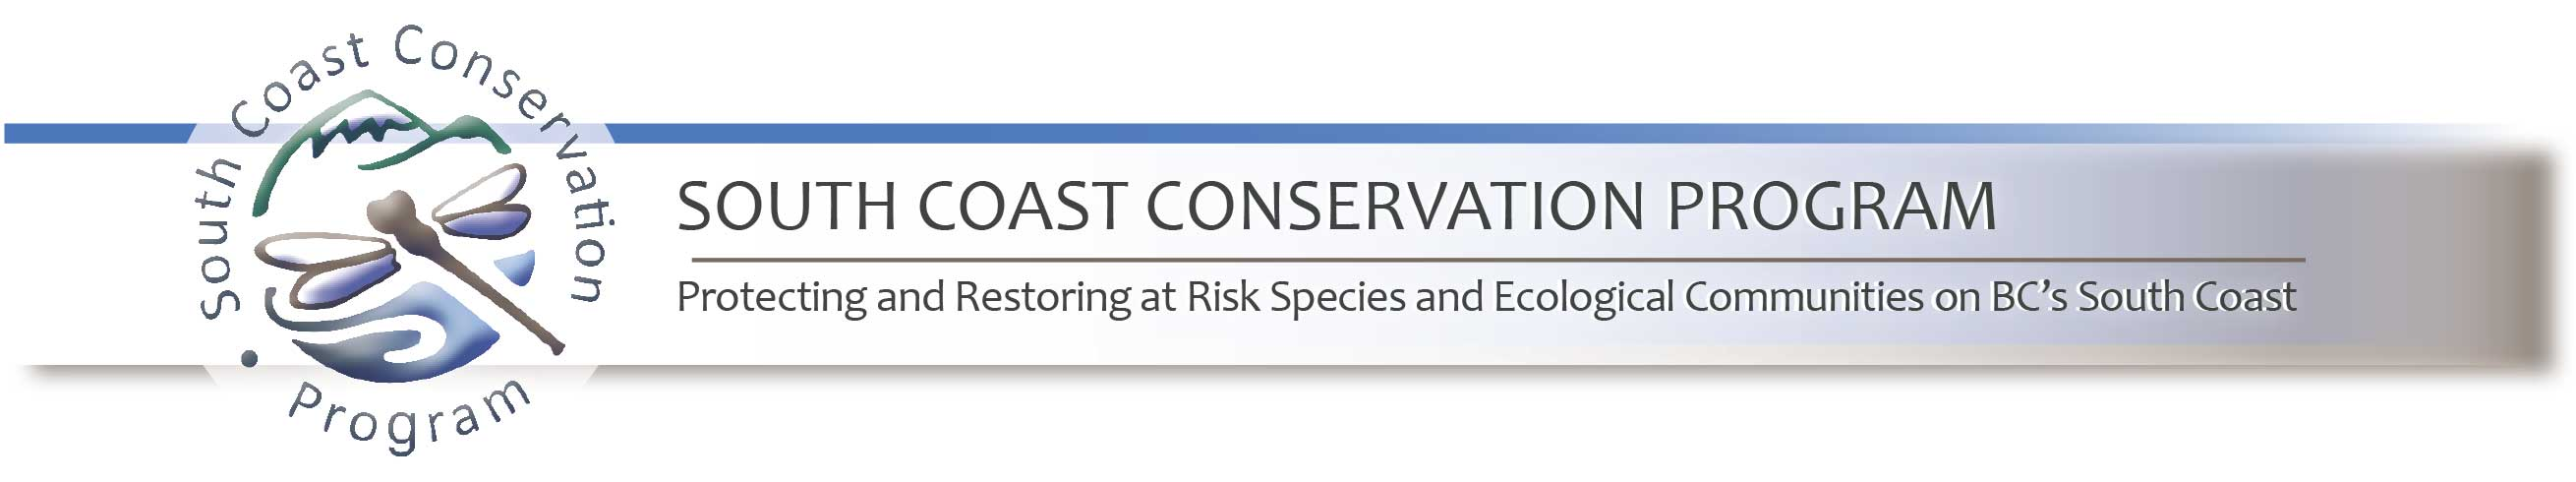 South Coast Conservation Program